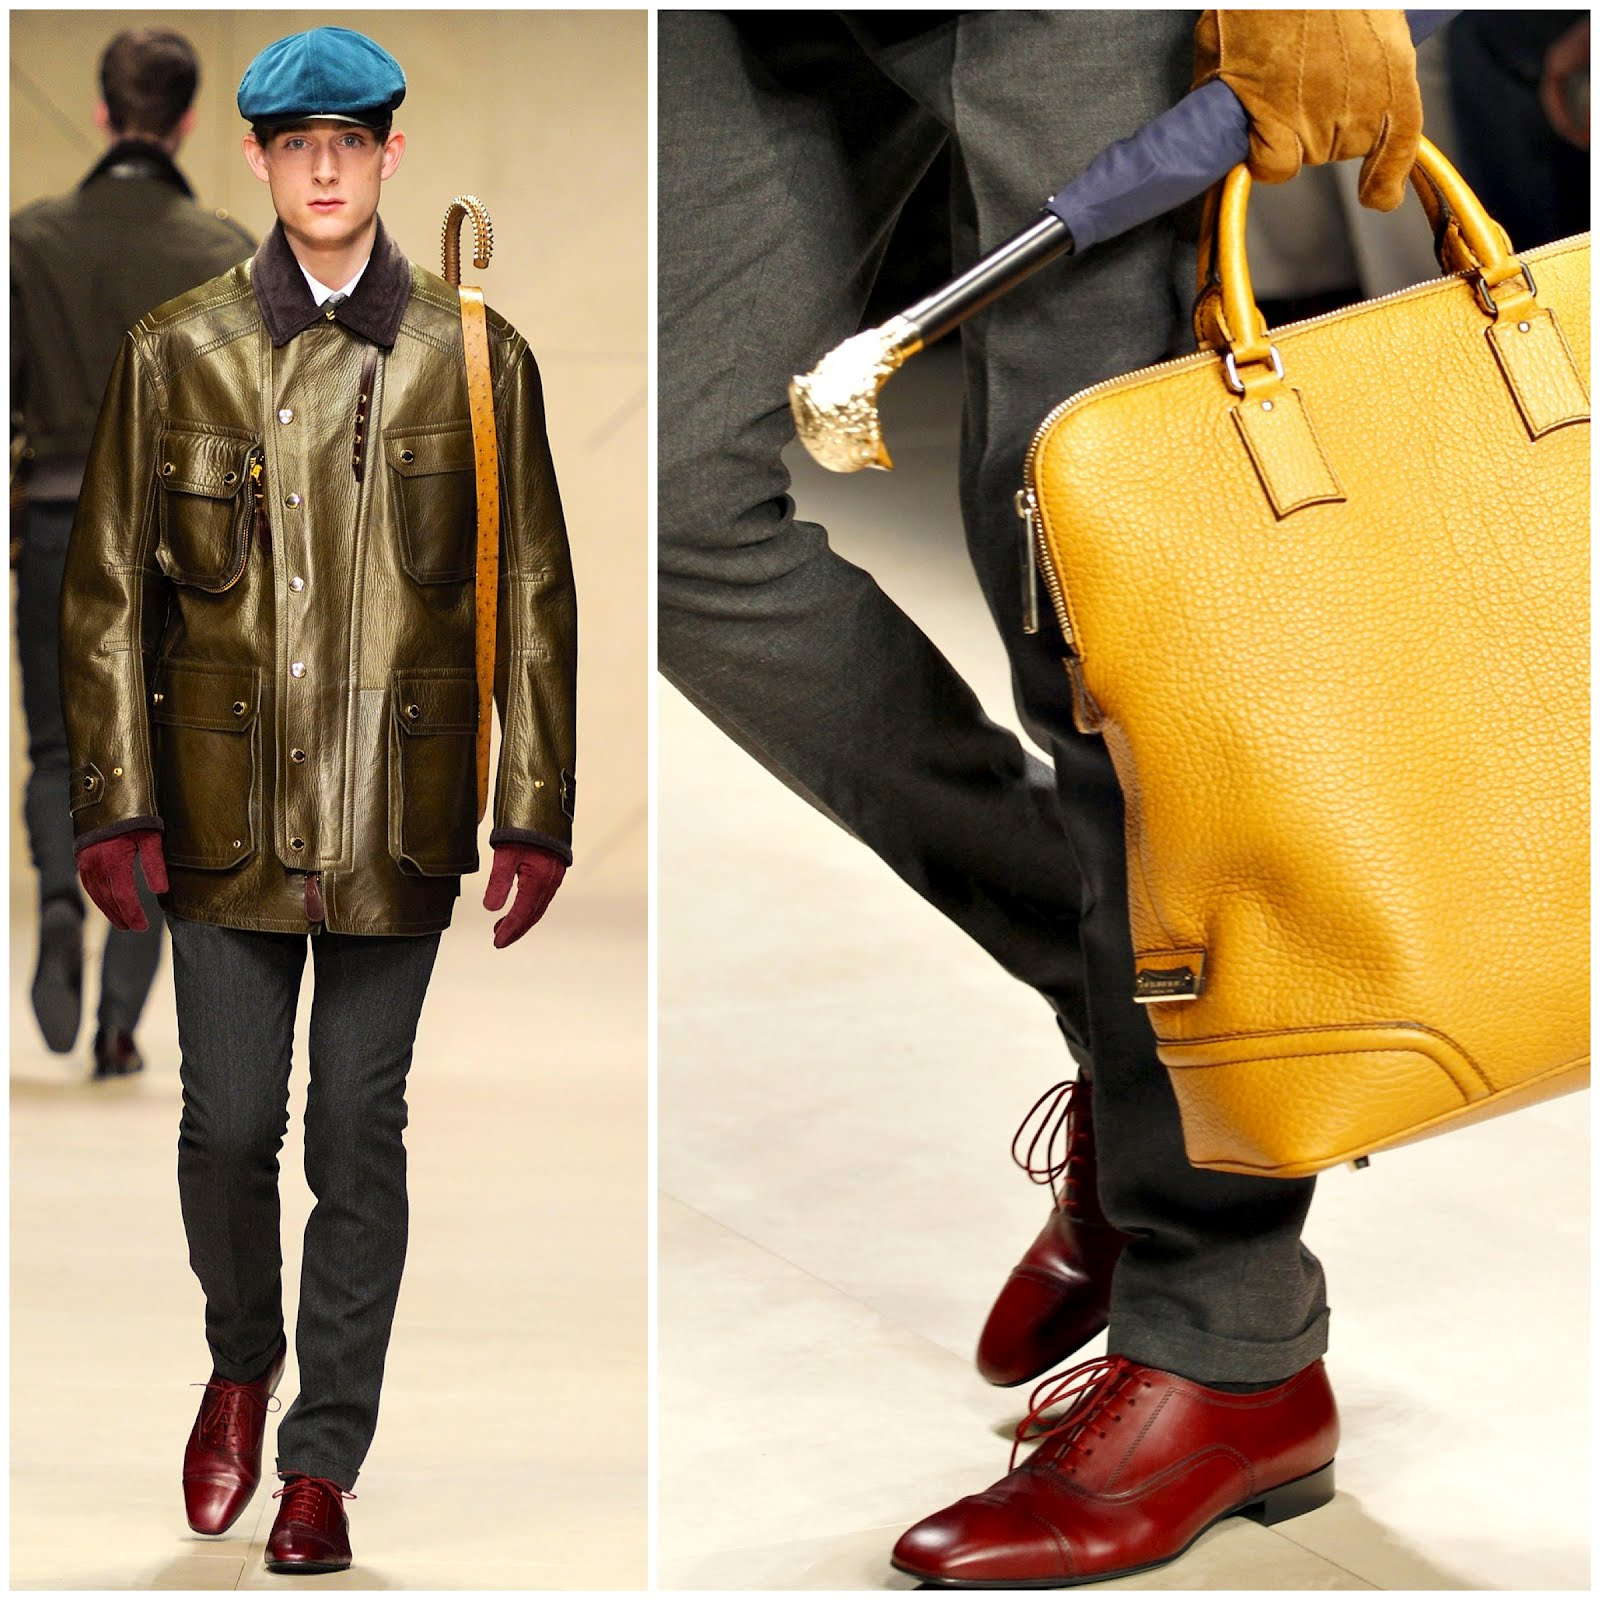 00O00 London Menswear Blog Burberry Prorsum Fall Winter 2012 accessories umbrella and shoes